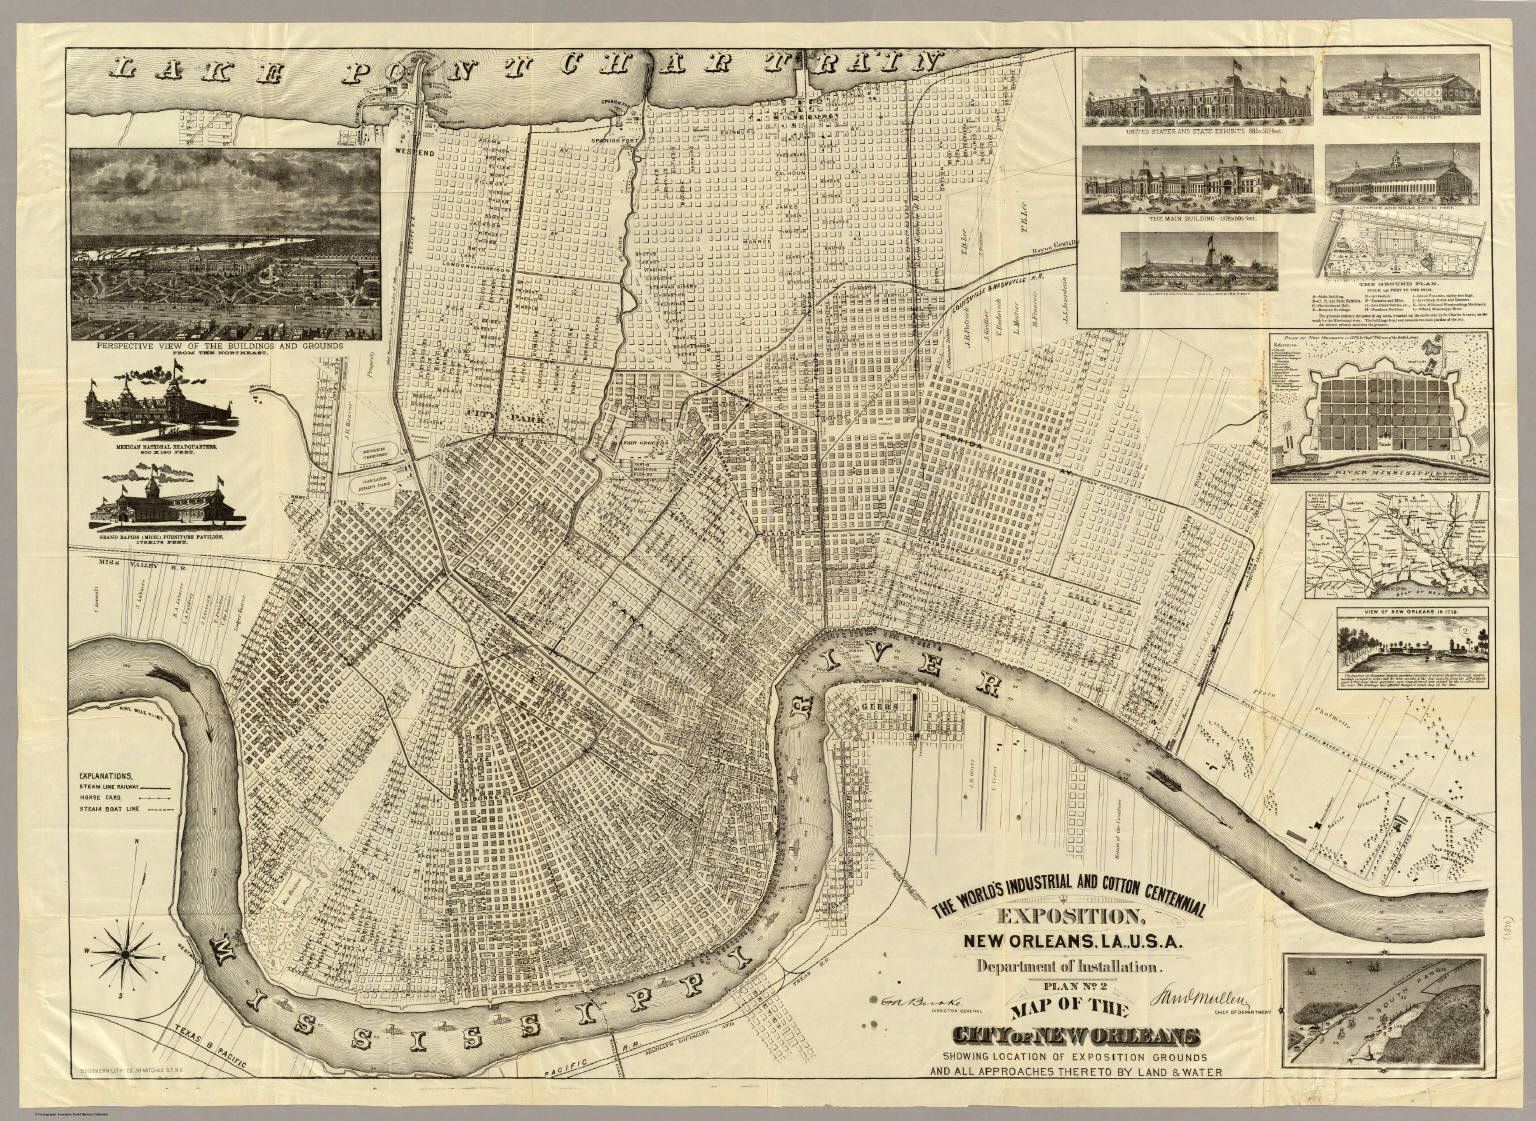 graphic relating to Printable Maps of New Orleans titled The Worlds Commercial And Cotton Centennial Exposition